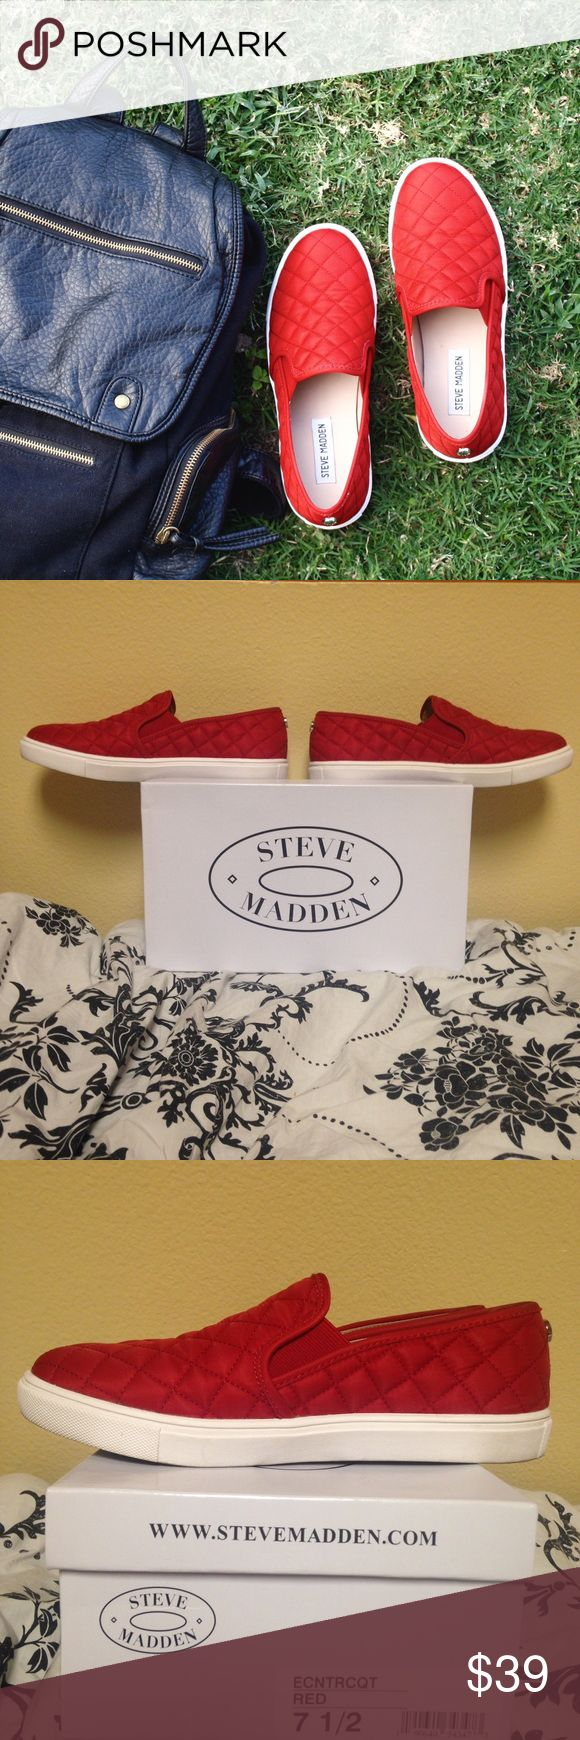 Steve Madden Slip On Sneakers New women's red Steve Madden slip on sneakers with Steve Madden shoe box included. US Size 7.5. These are sold out in online stores. Steve Madden Shoes Sneakers